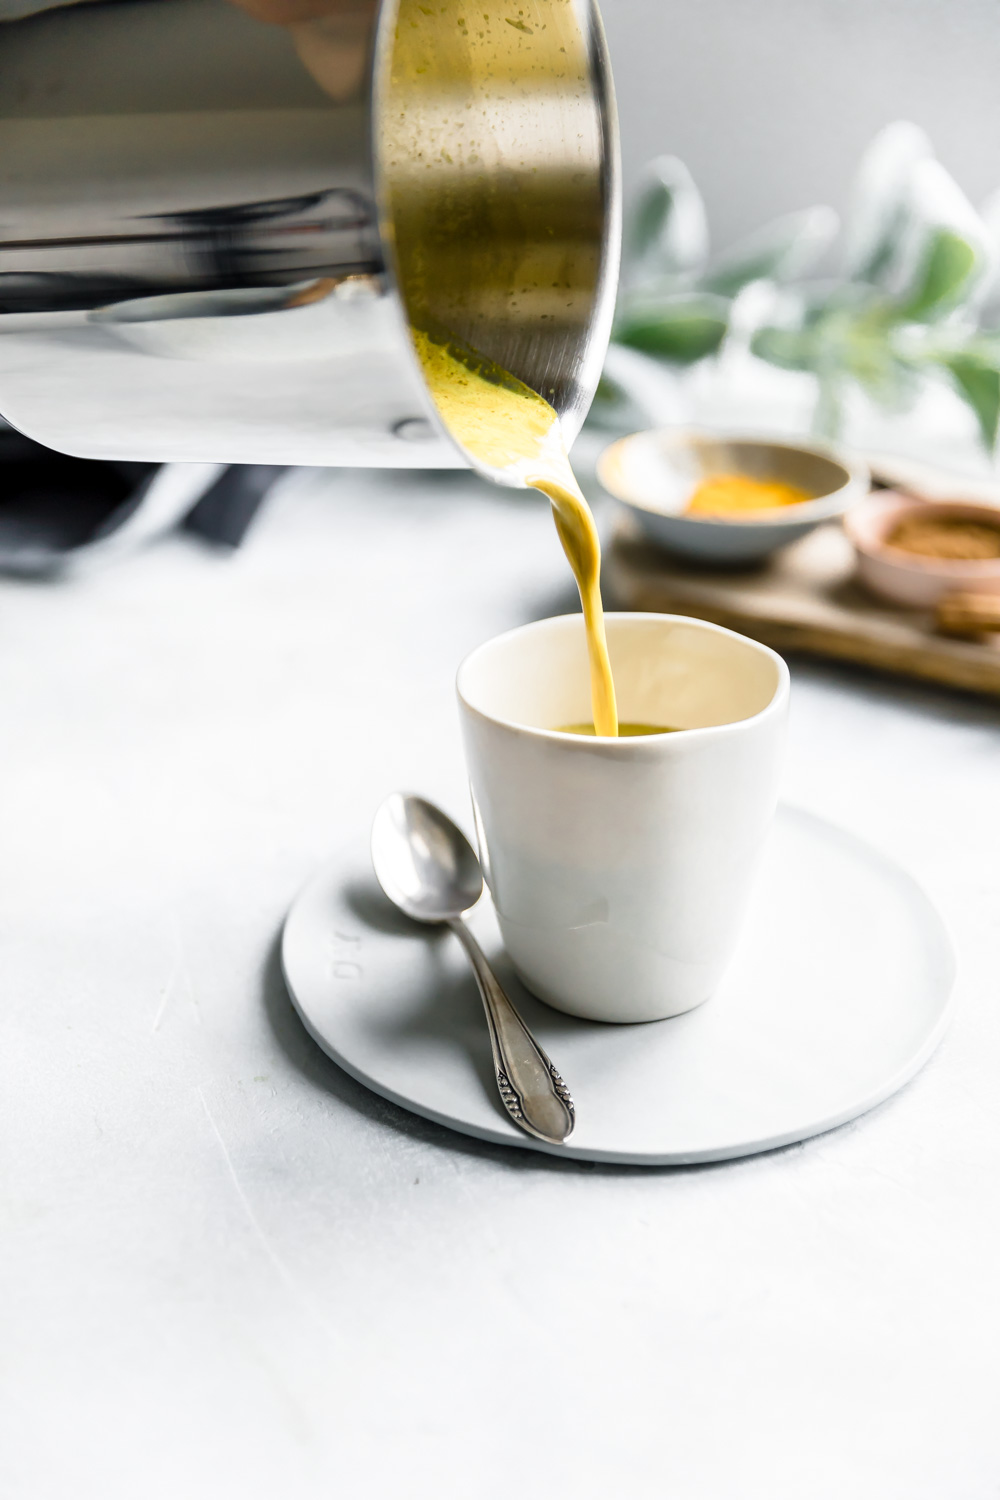 pour shot of golden milk from a stainless steel pot into a white cup on a small white plate next to a teaspoon